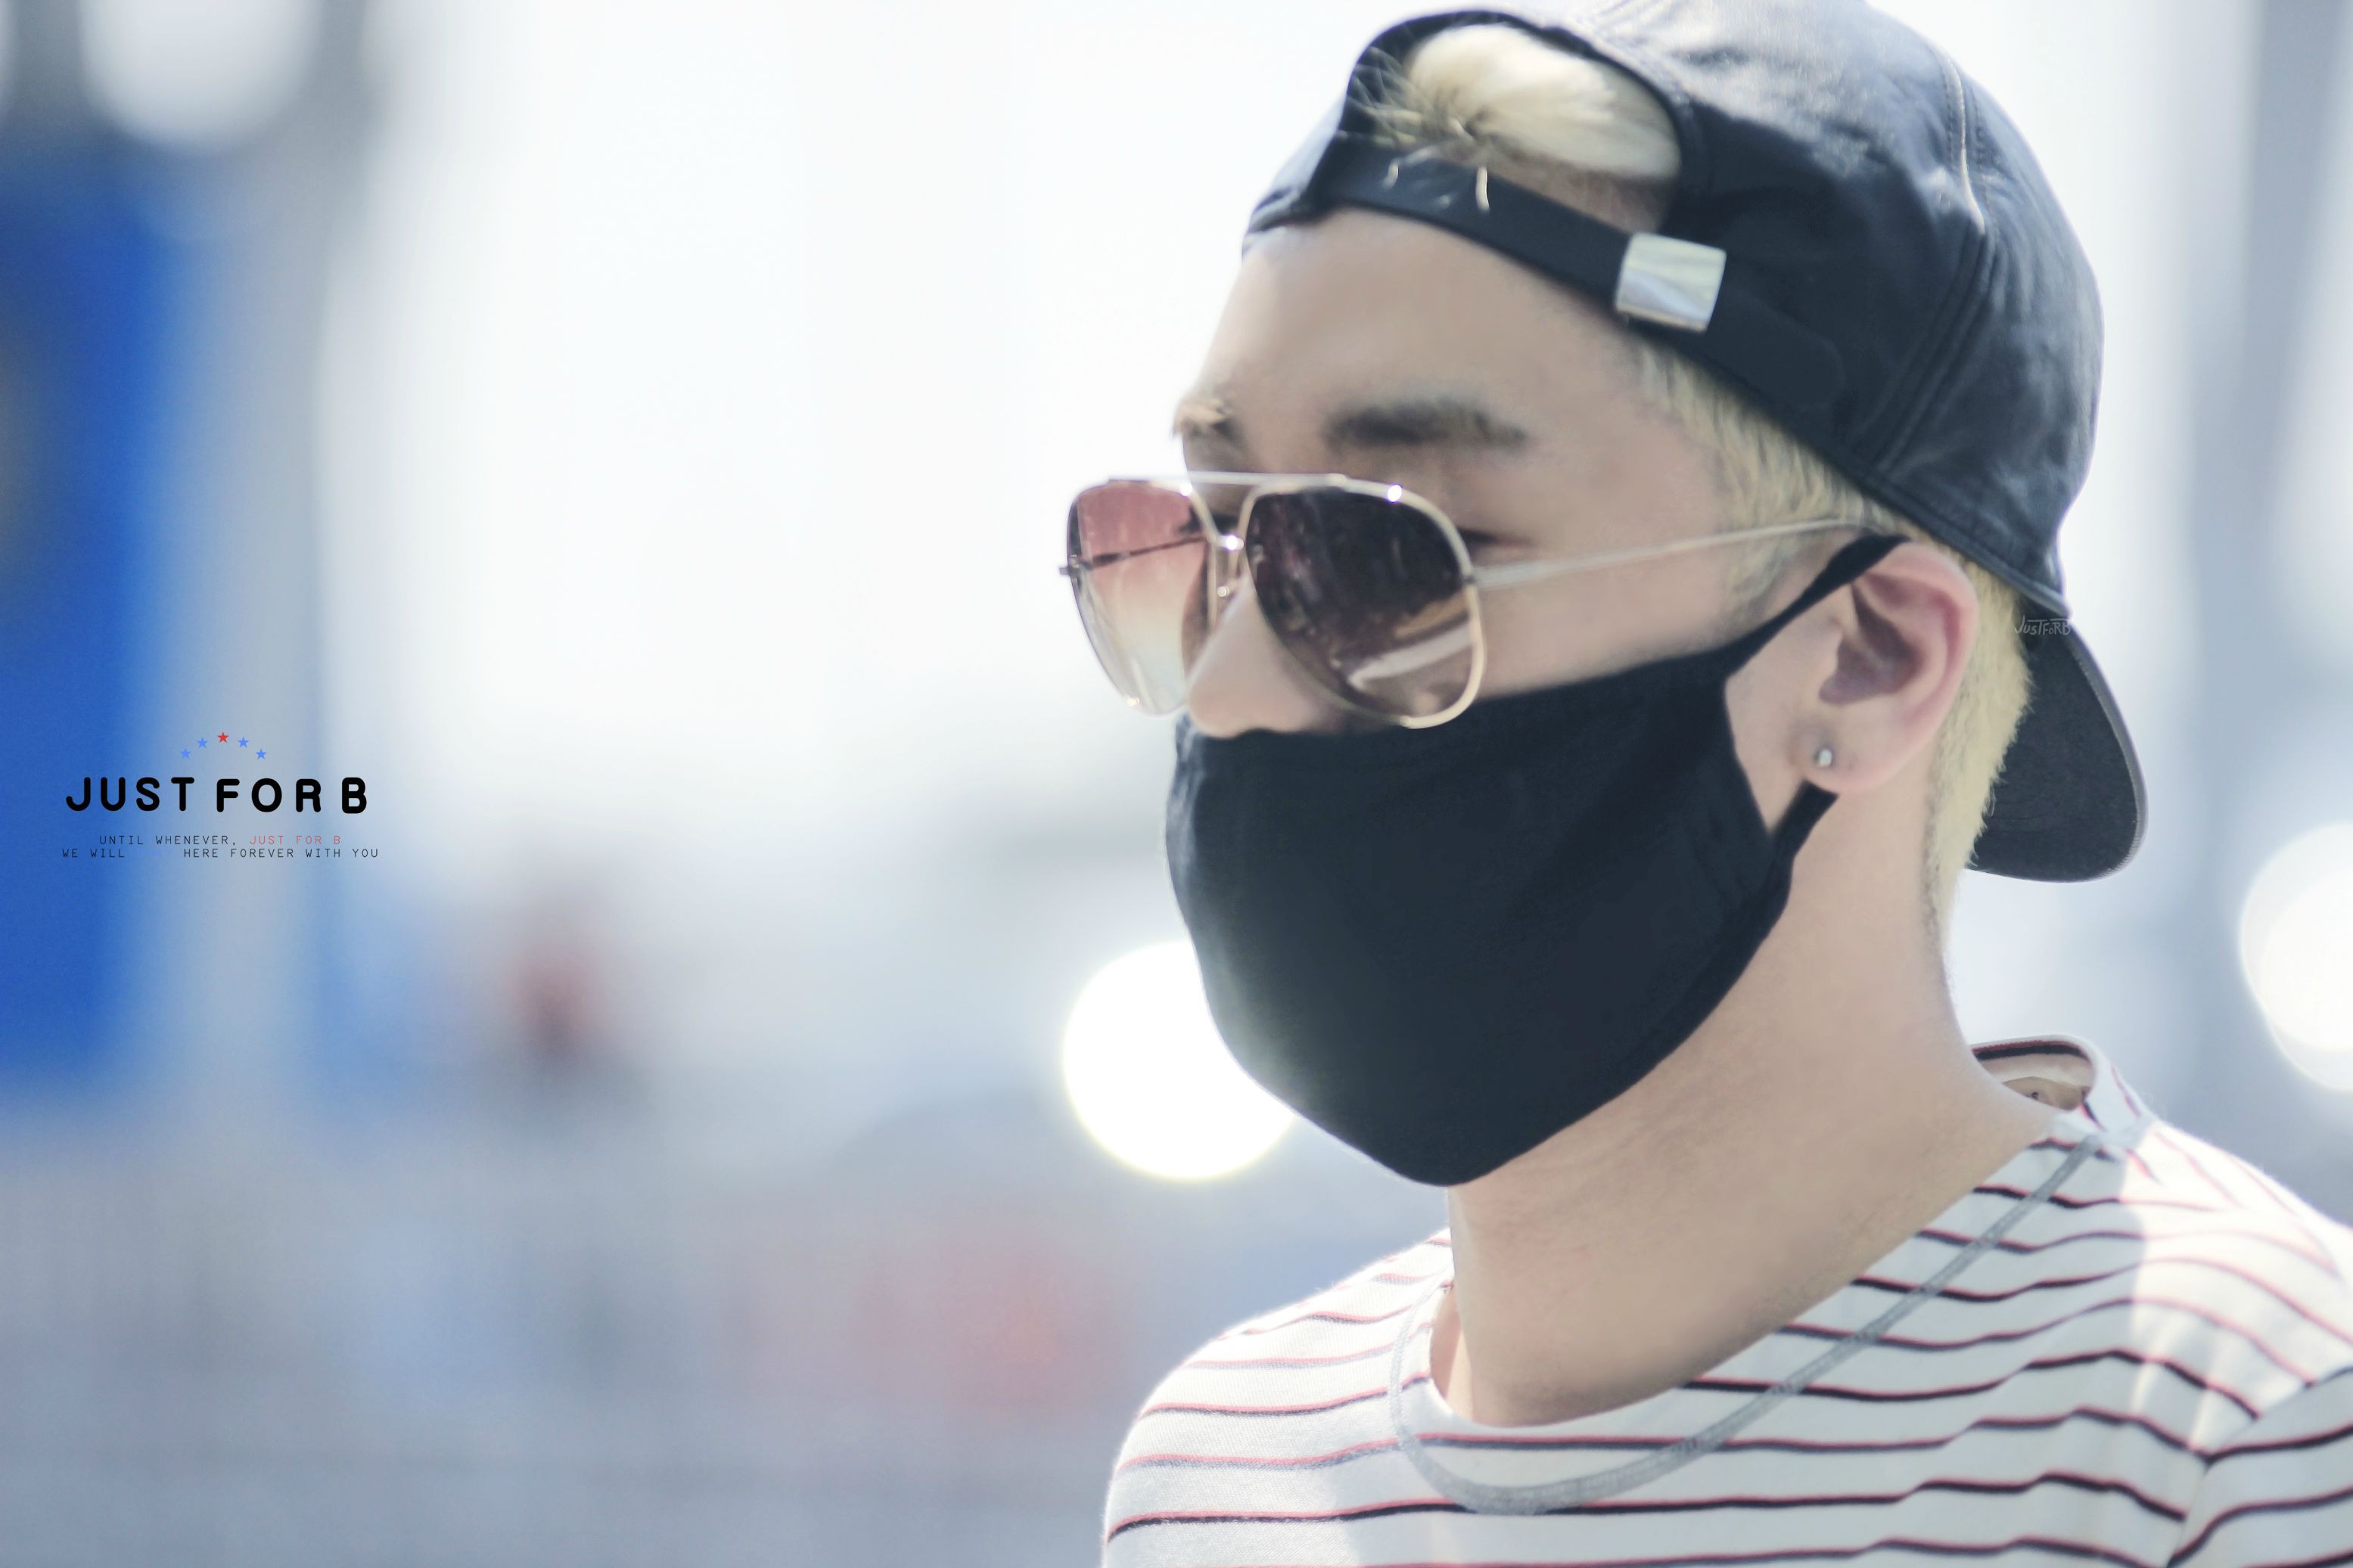 HQs BIGBANG Incheon to Guangzhou 2015-05-29 justforBB 001.jpg